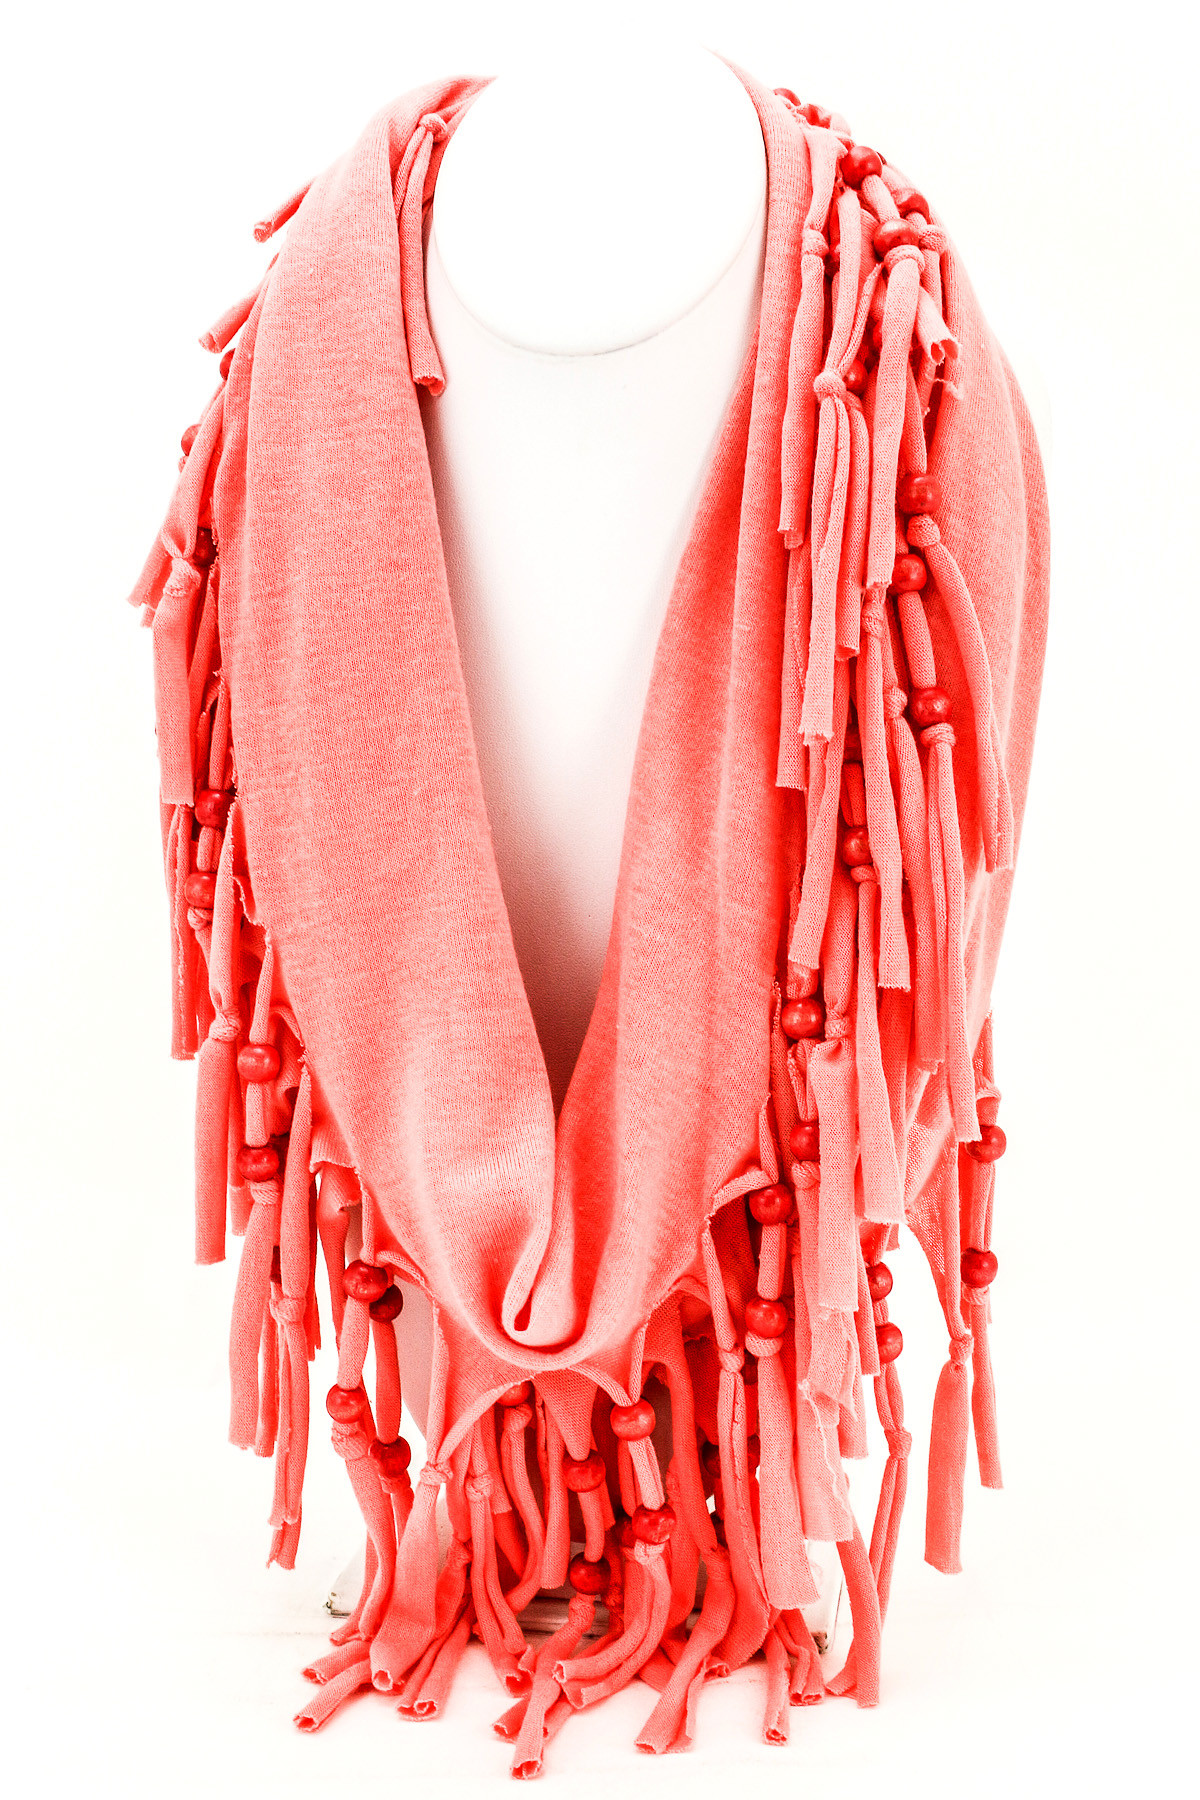 Woven Beaded Knotted Fringe Scarf Scarves